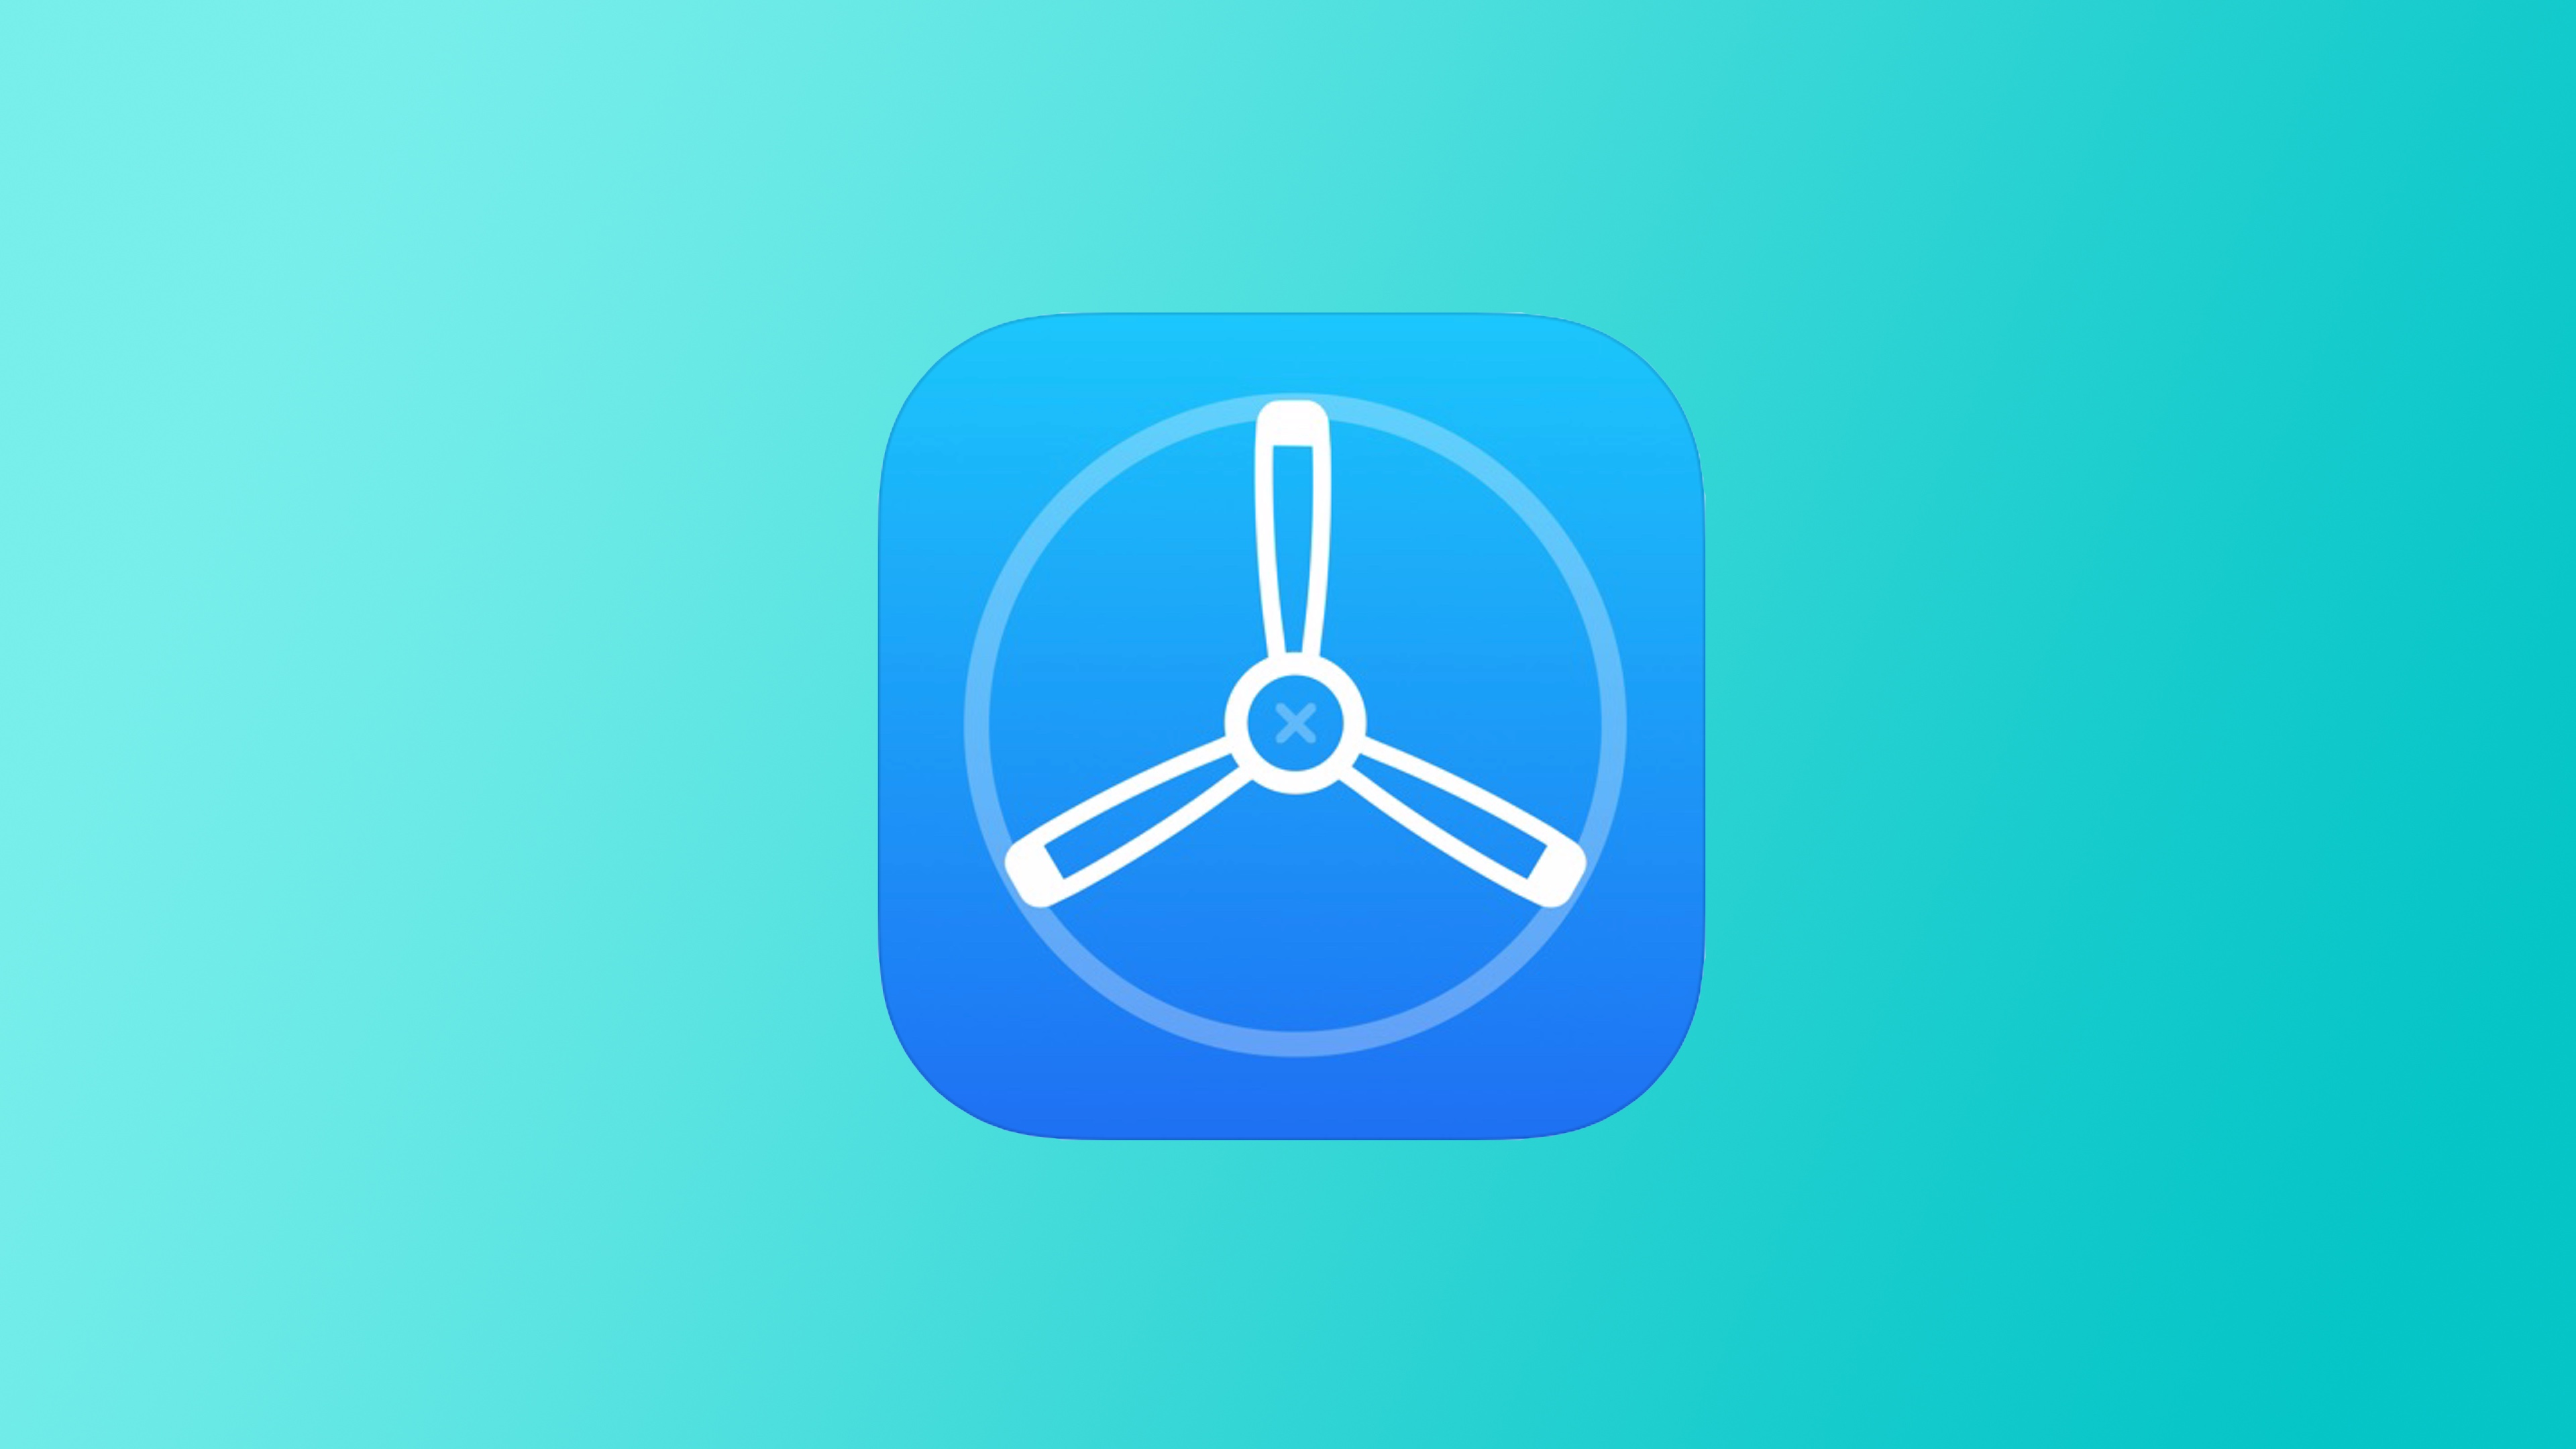 TestFlight for iOS adds Search integration and other improvements in latest update